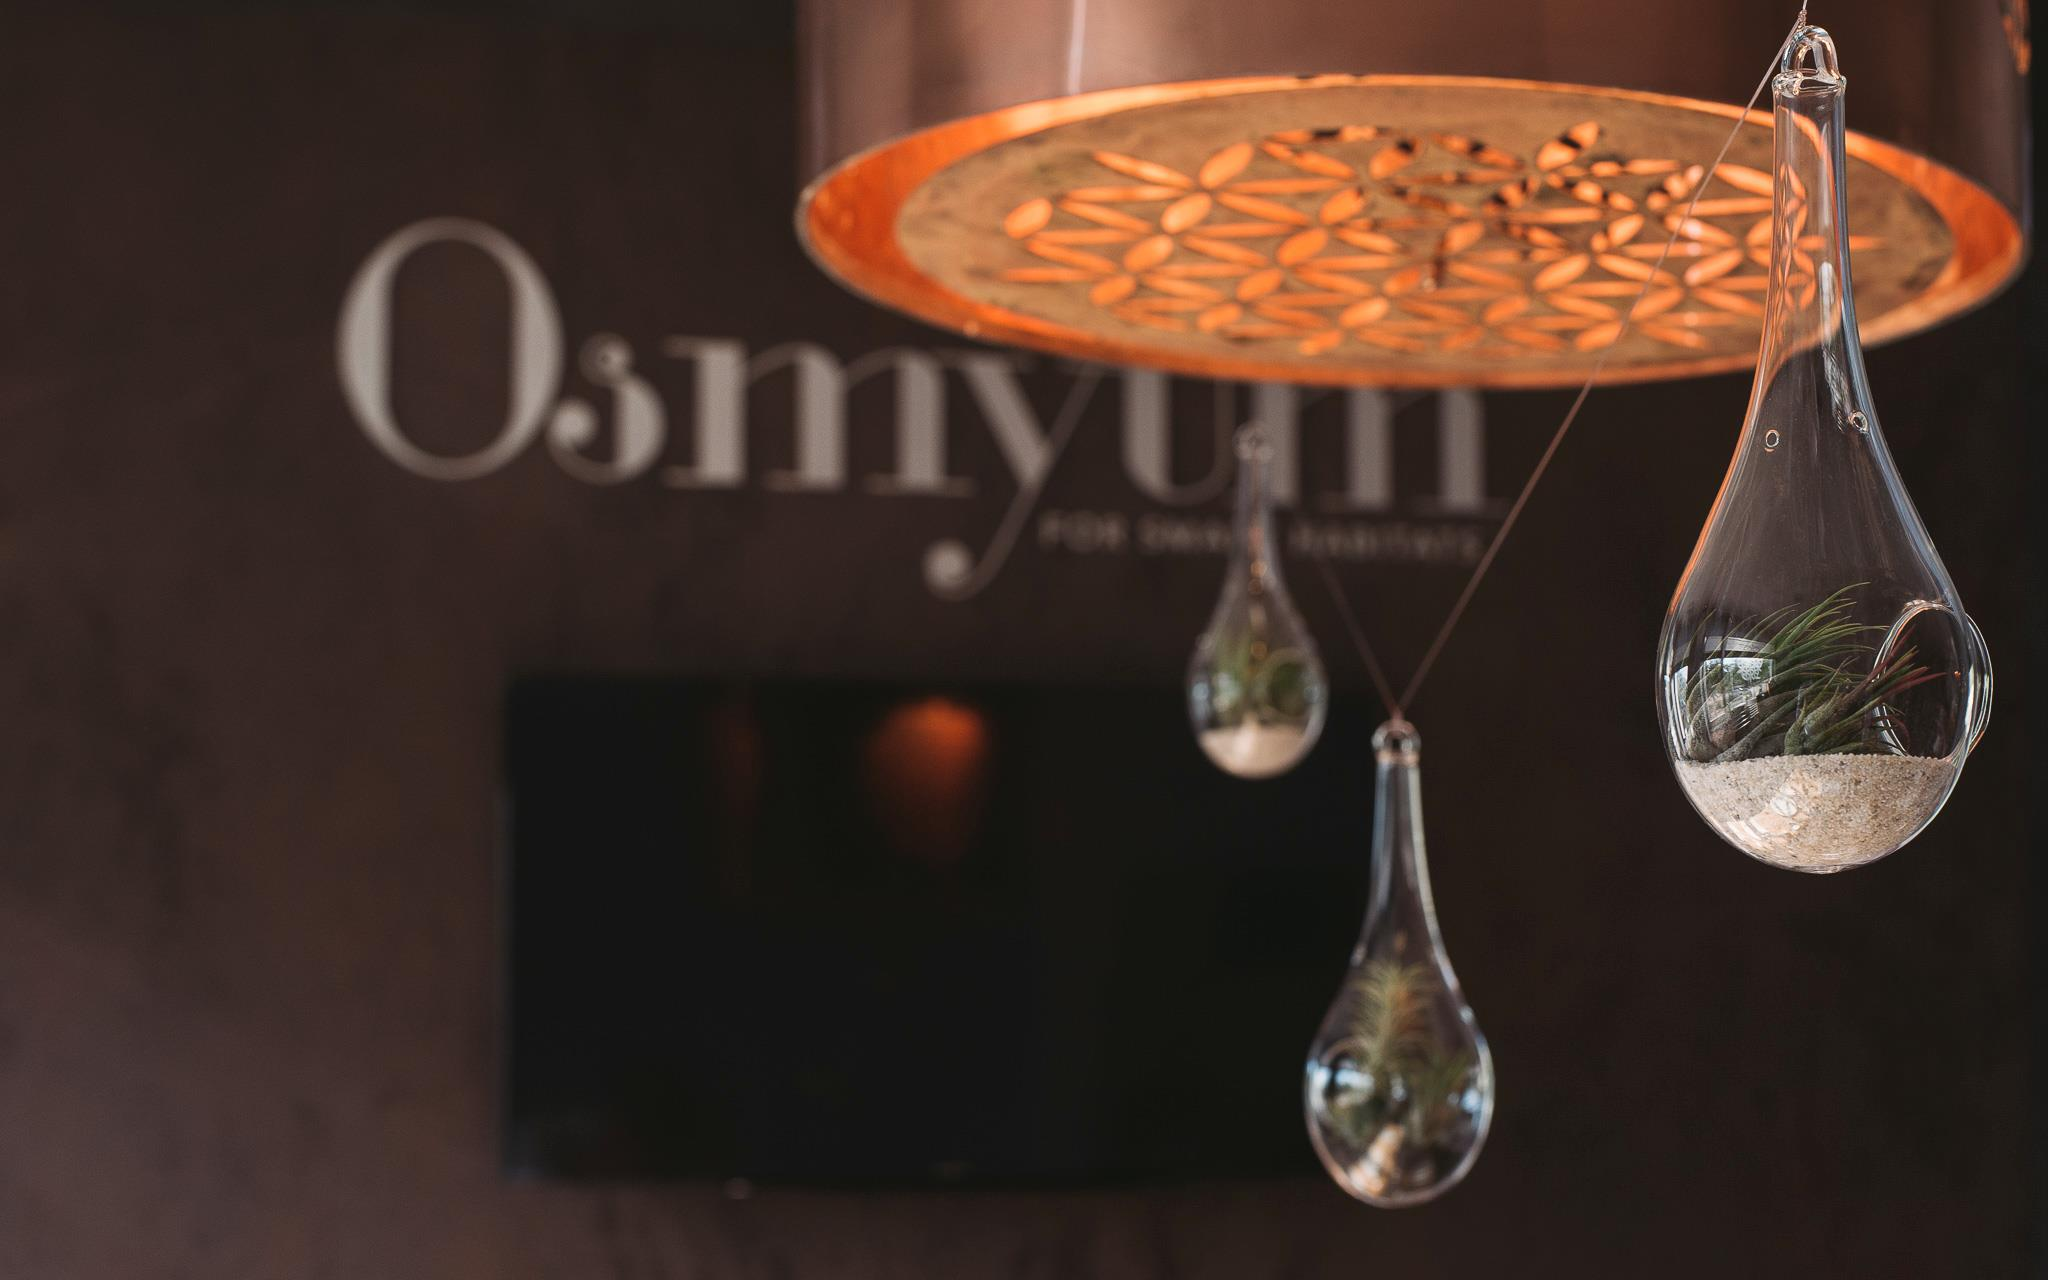 evenimente osmyum showroom bucuresti design interior decoratiuni interioare